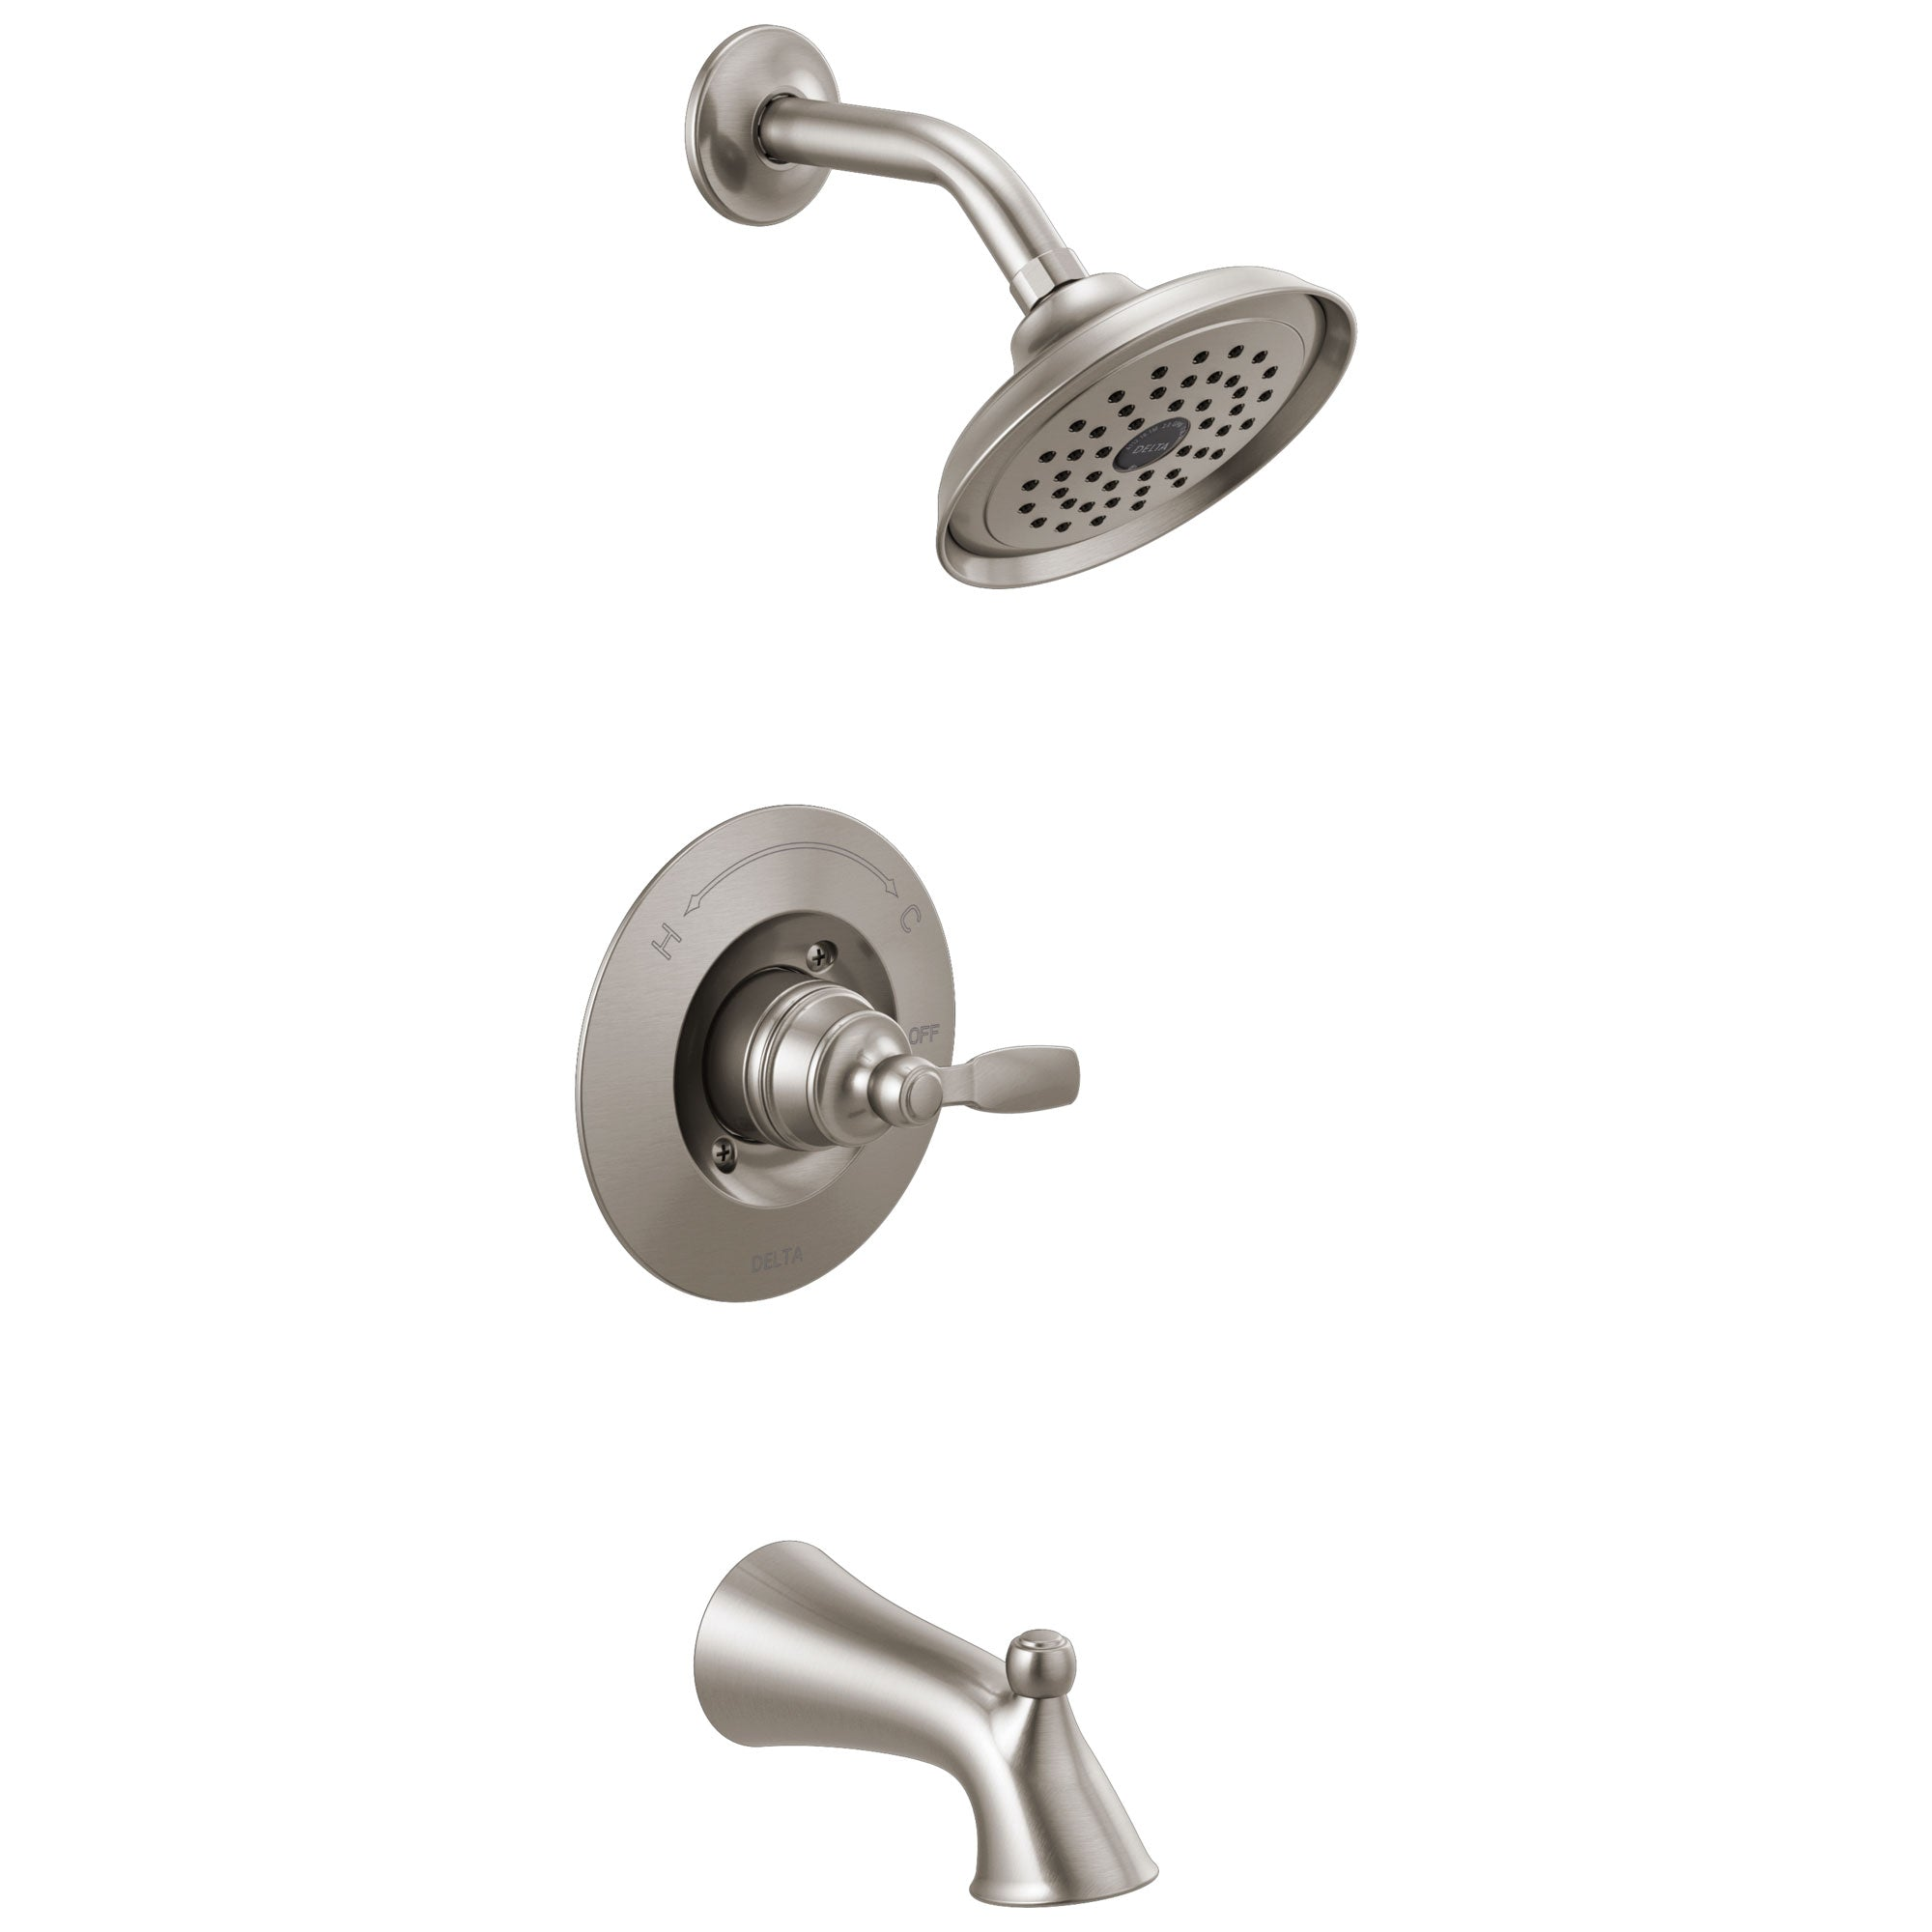 Delta Woodhurst Stainless Steel Finish Single Lever Handle Tub/Shower Combination Faucet Includes Cartridge, and Valve with Stops D3466V